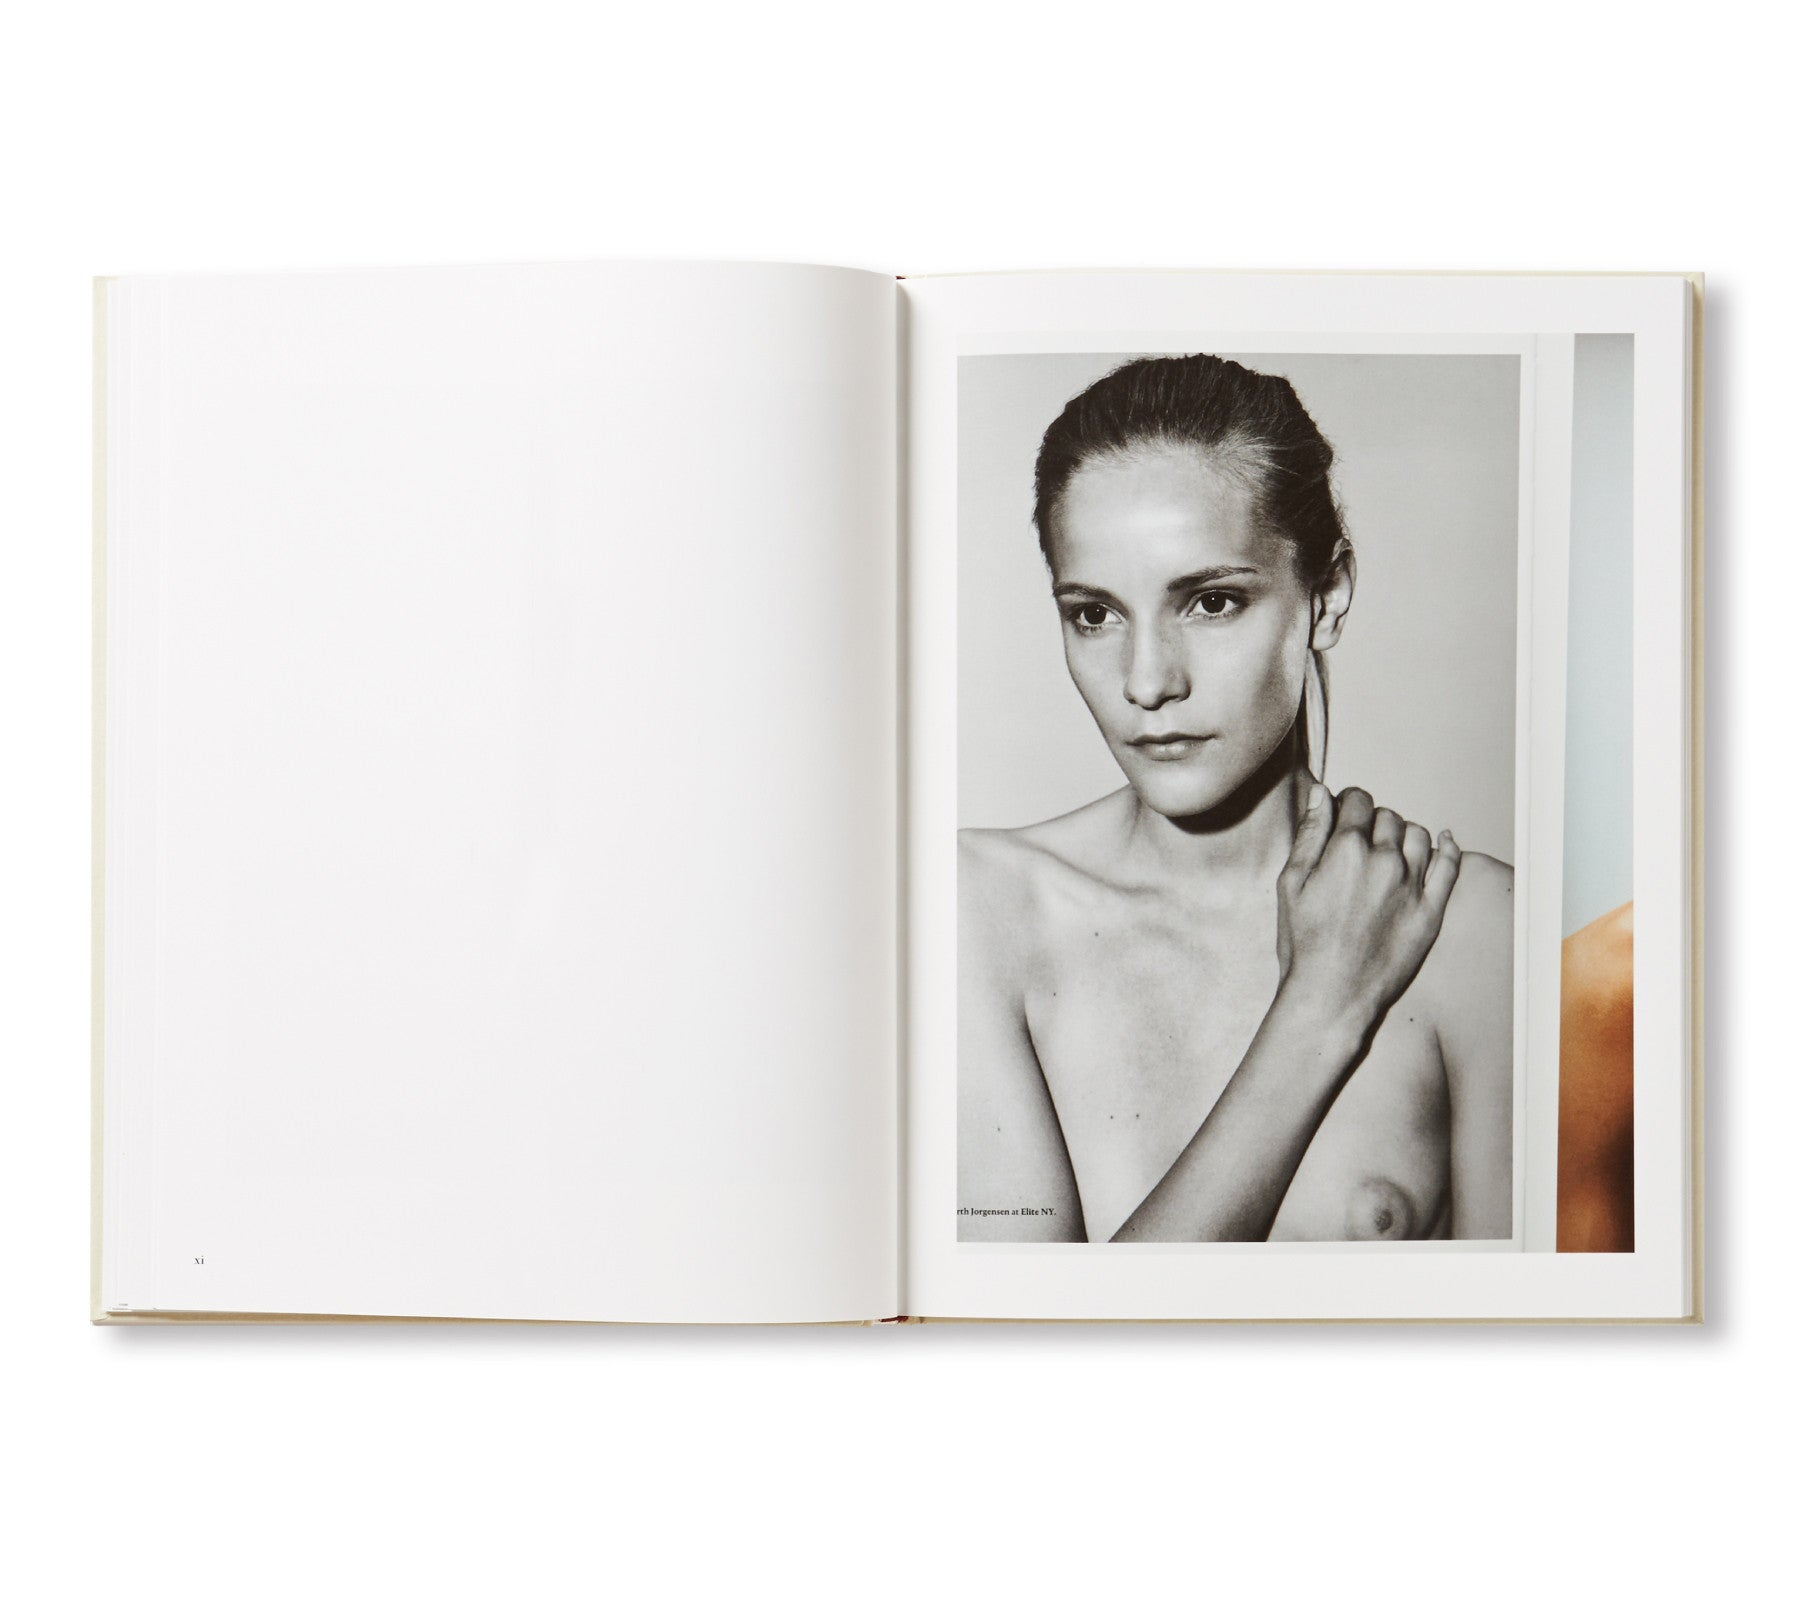 8 WOMEN by Collier Schorr